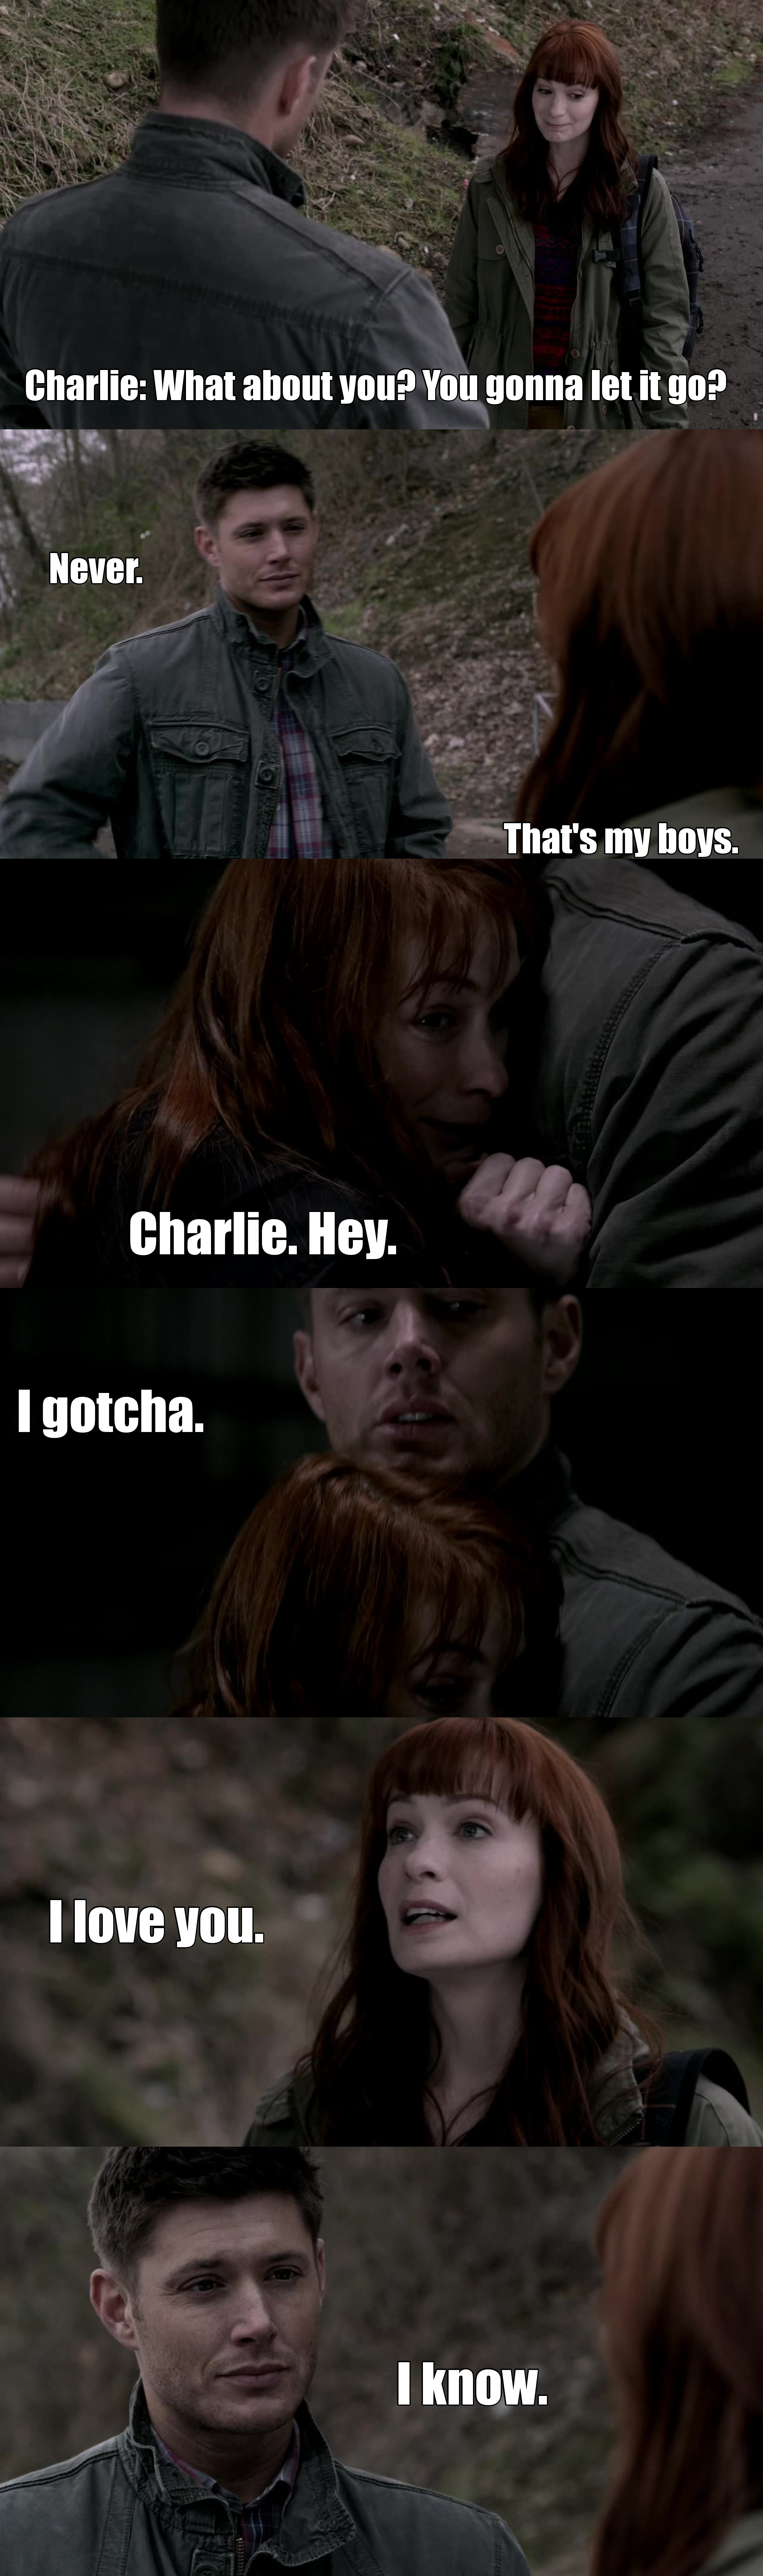 It's not because Charlie is dead that she'll be forever gone right ? right ? There's a blurry line between Life and Death in Supernatural, she can come back, I hope she will, I miss her already...